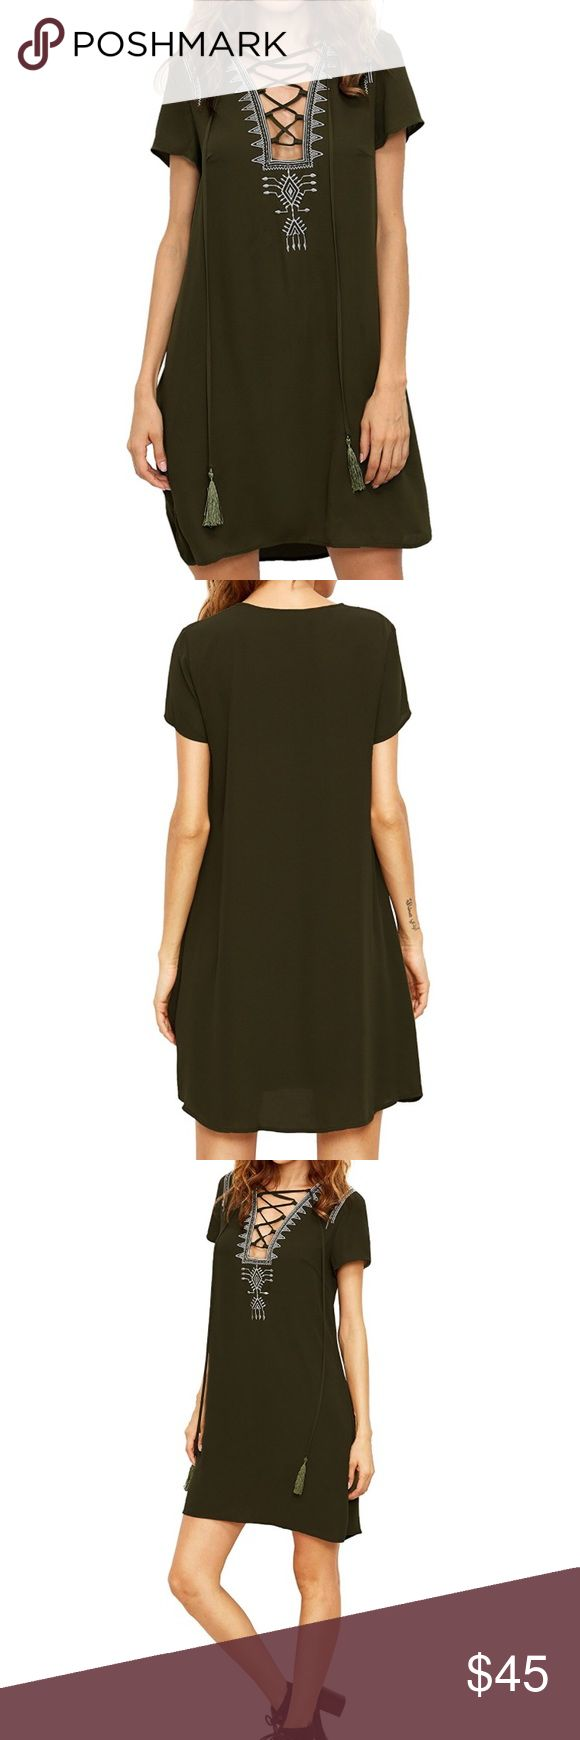 NWOT Lace Up Boho Army Green Shift Dress Brand new Boho shift dress in a trendy army green shade. 100% polyester. Features a Lace up neckline with an interesting cut, tassles, and Boho embroidery. Dresses Mini